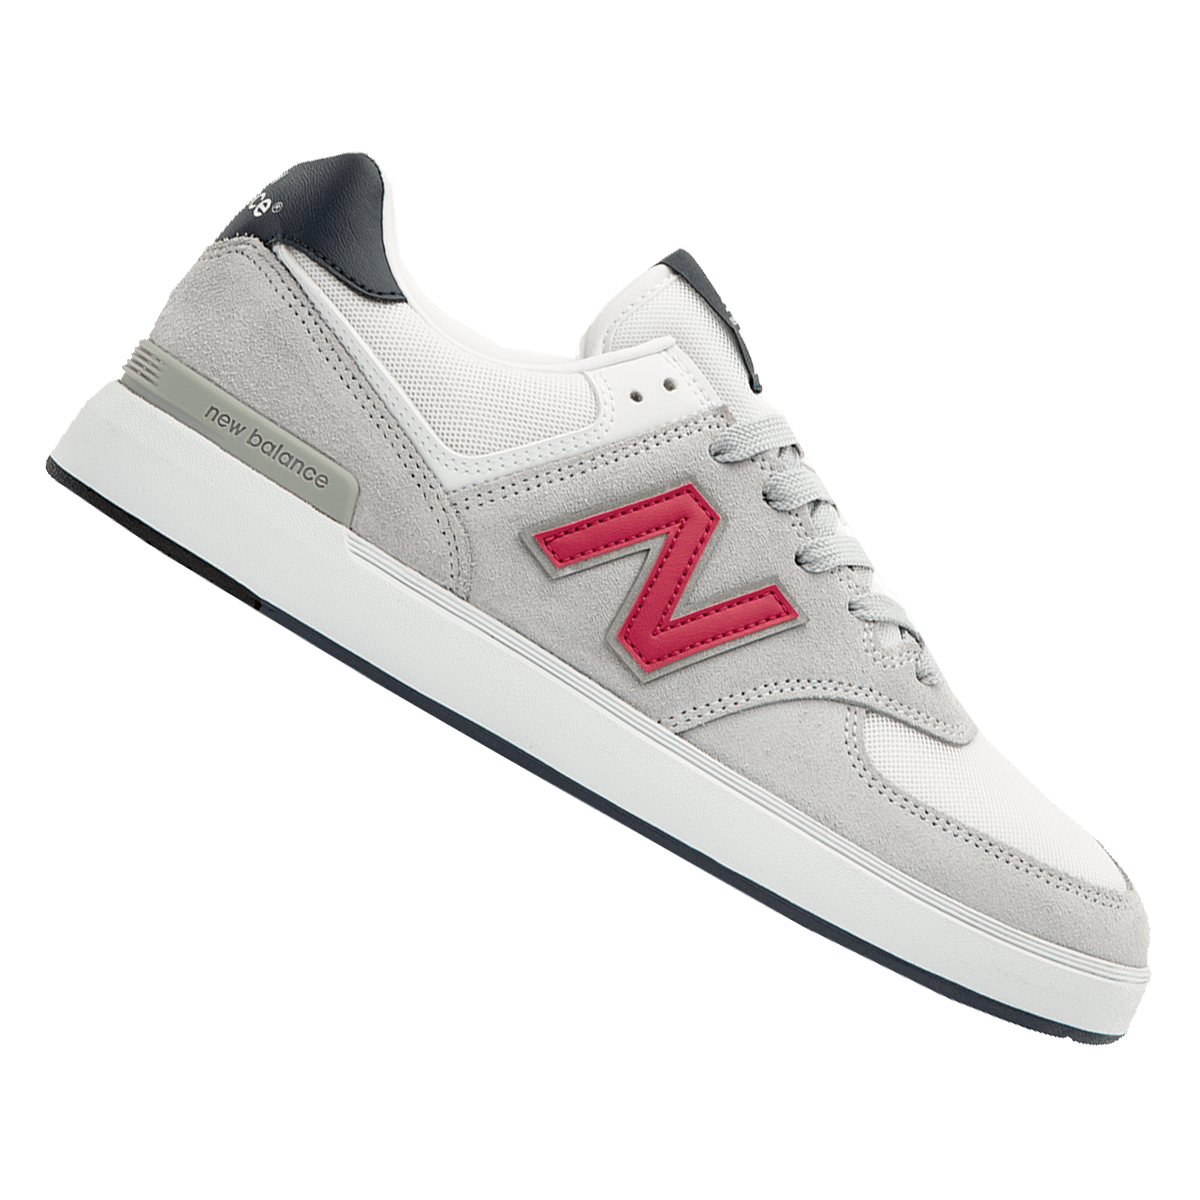 Chaussures de loisirs New Balance All Coasts 574 gris clair/rouge ...